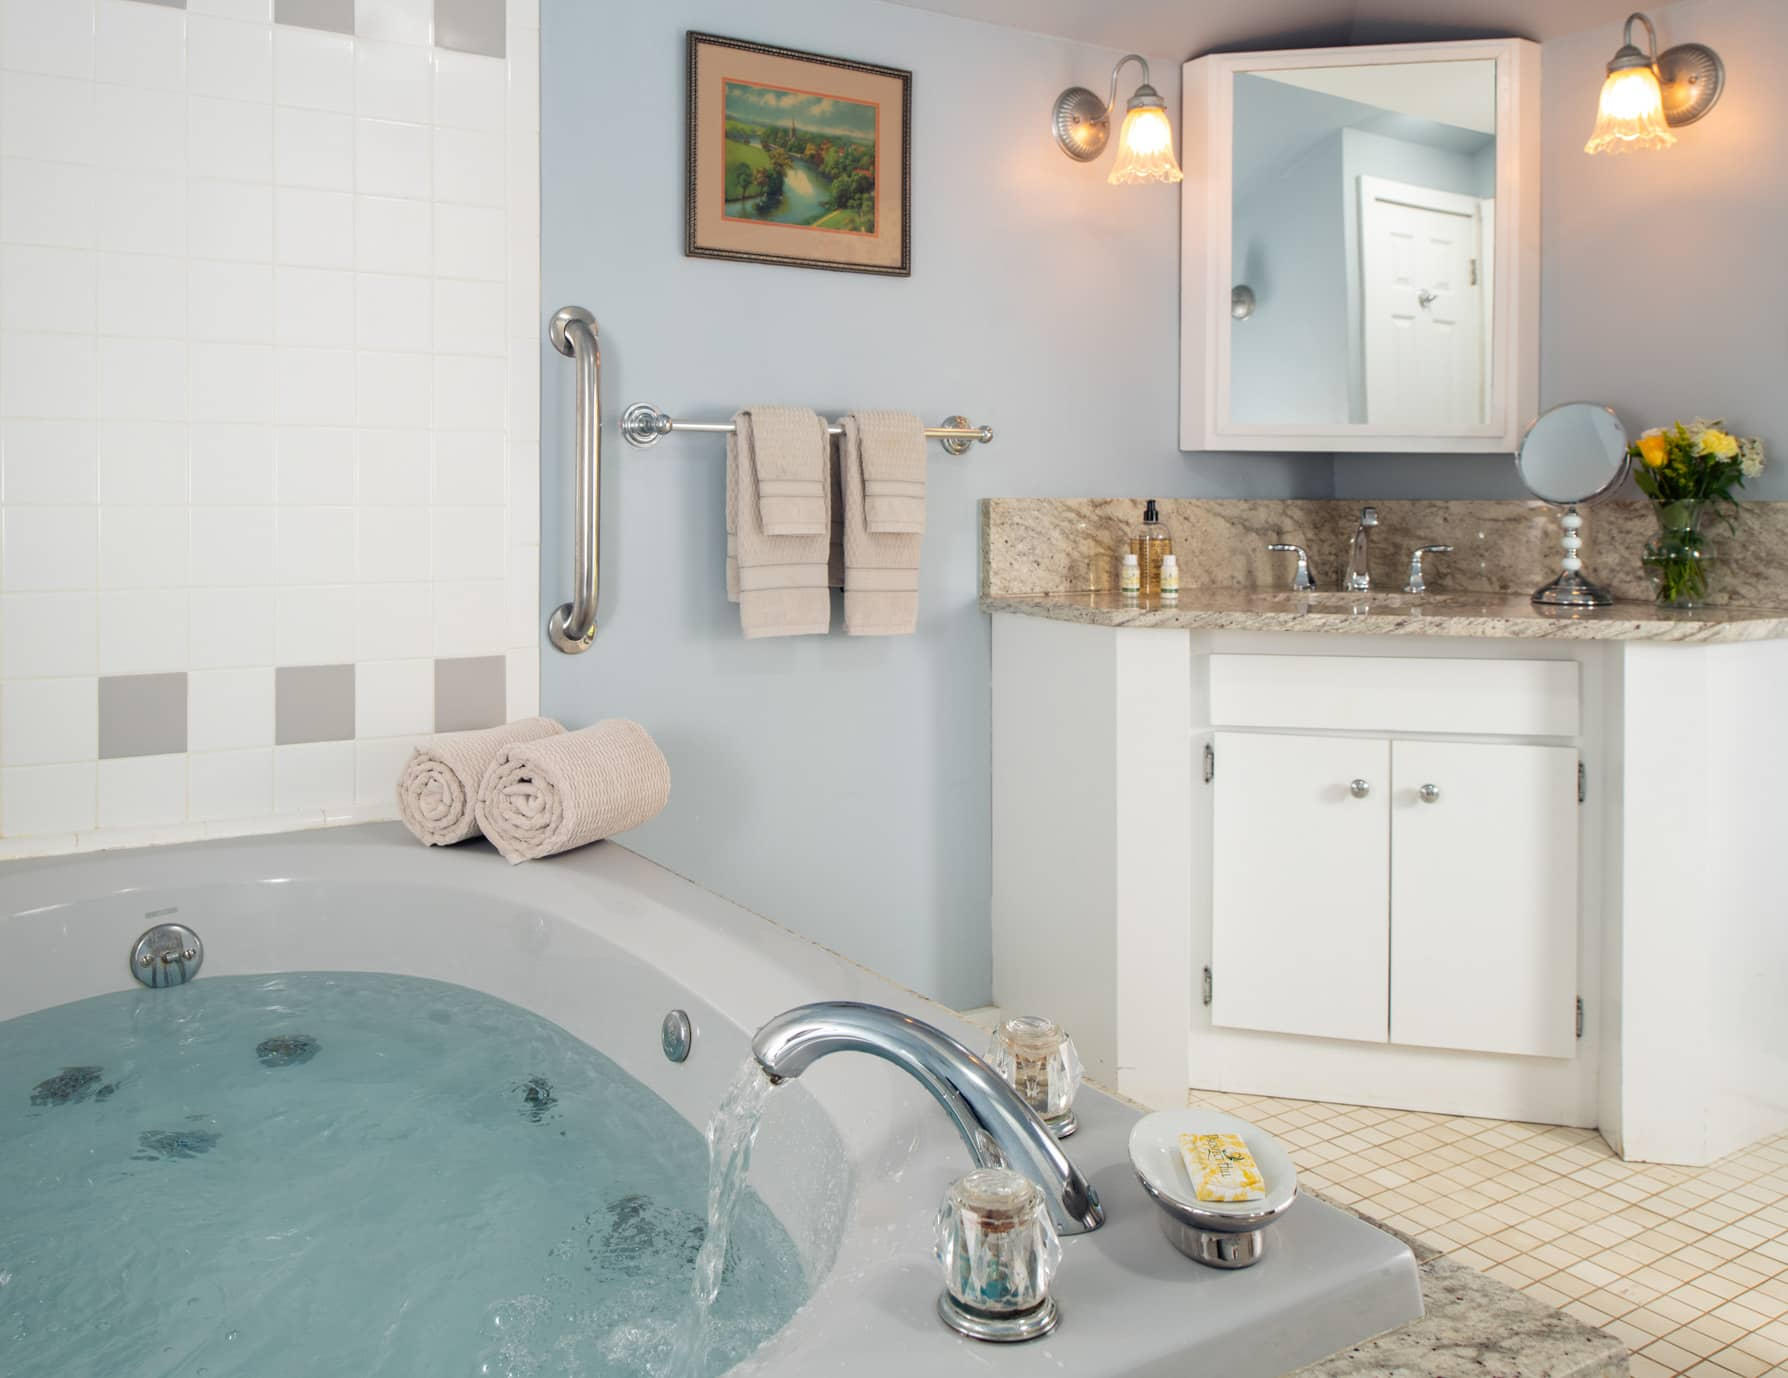 Large jetted tub in a bathroom